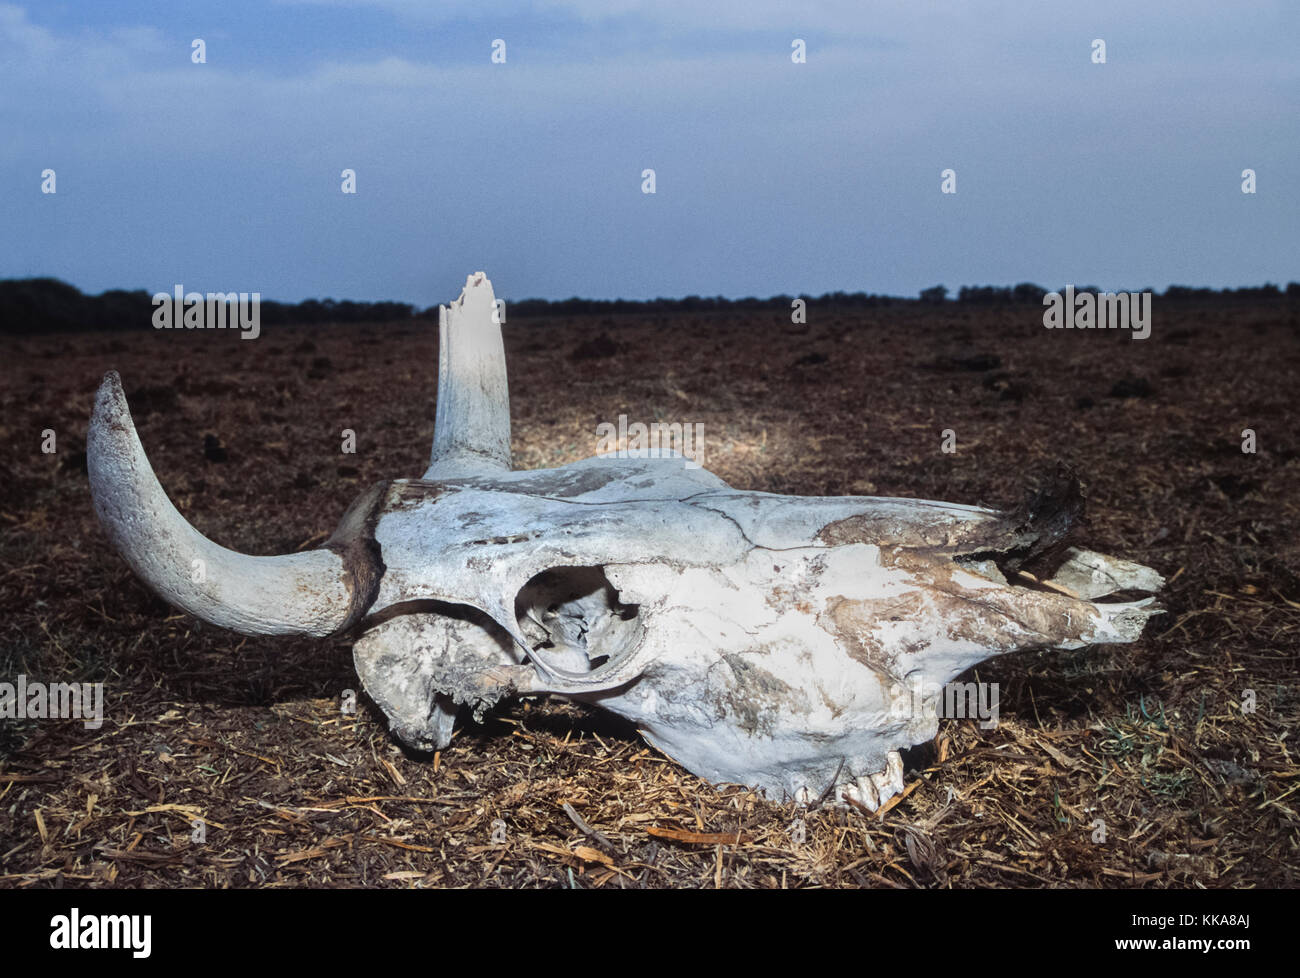 Cow skull, (Bos domesticus), drought victim, Gujarat, India - Stock Image